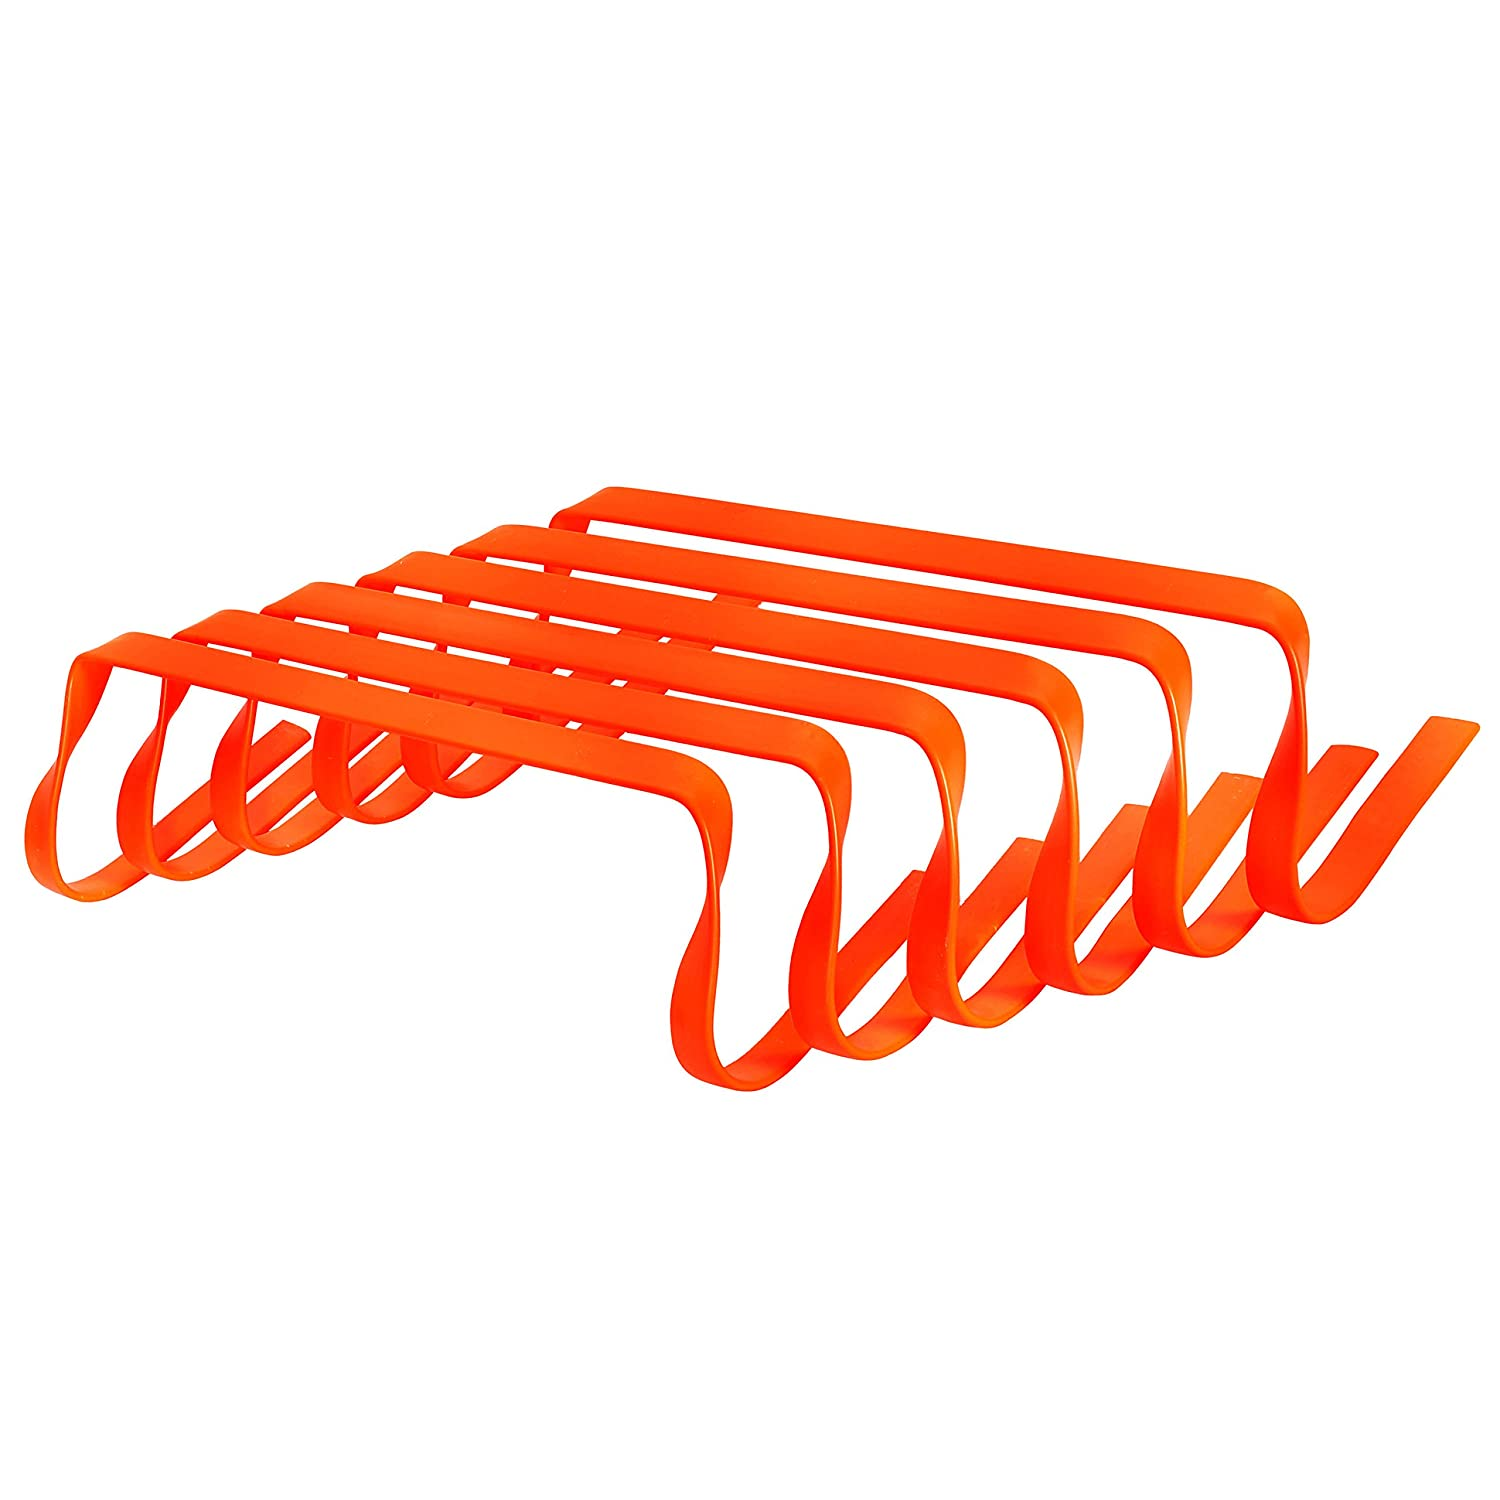 GSI All Purpose Agility Flat Bounce Back Hurdles Speed Training, Track Field Coordination Plyometric Hurdles - Pack of 6